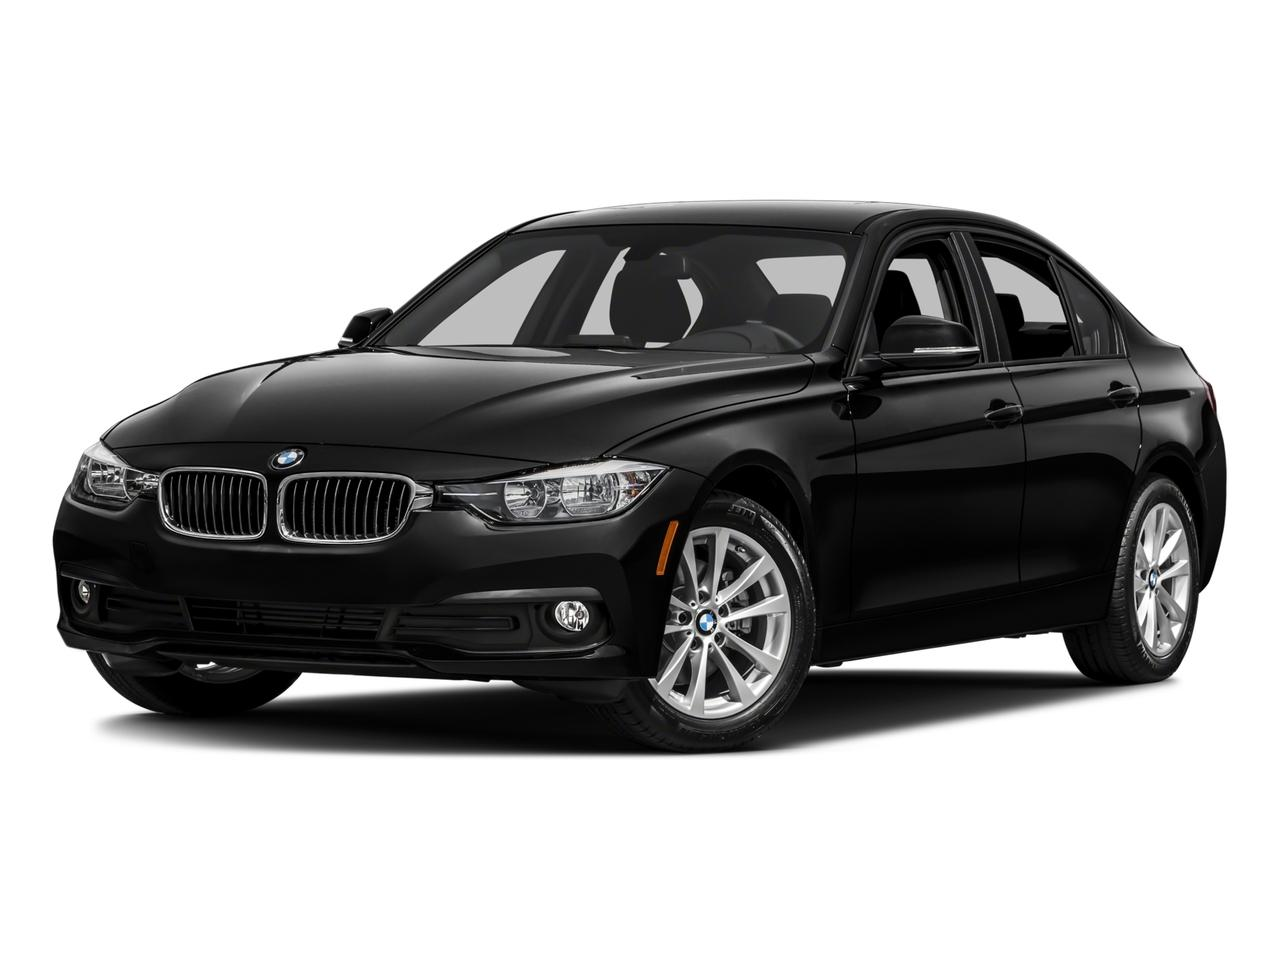 2016 BMW 320i Vehicle Photo in TEMPLE, TX 76504-3447